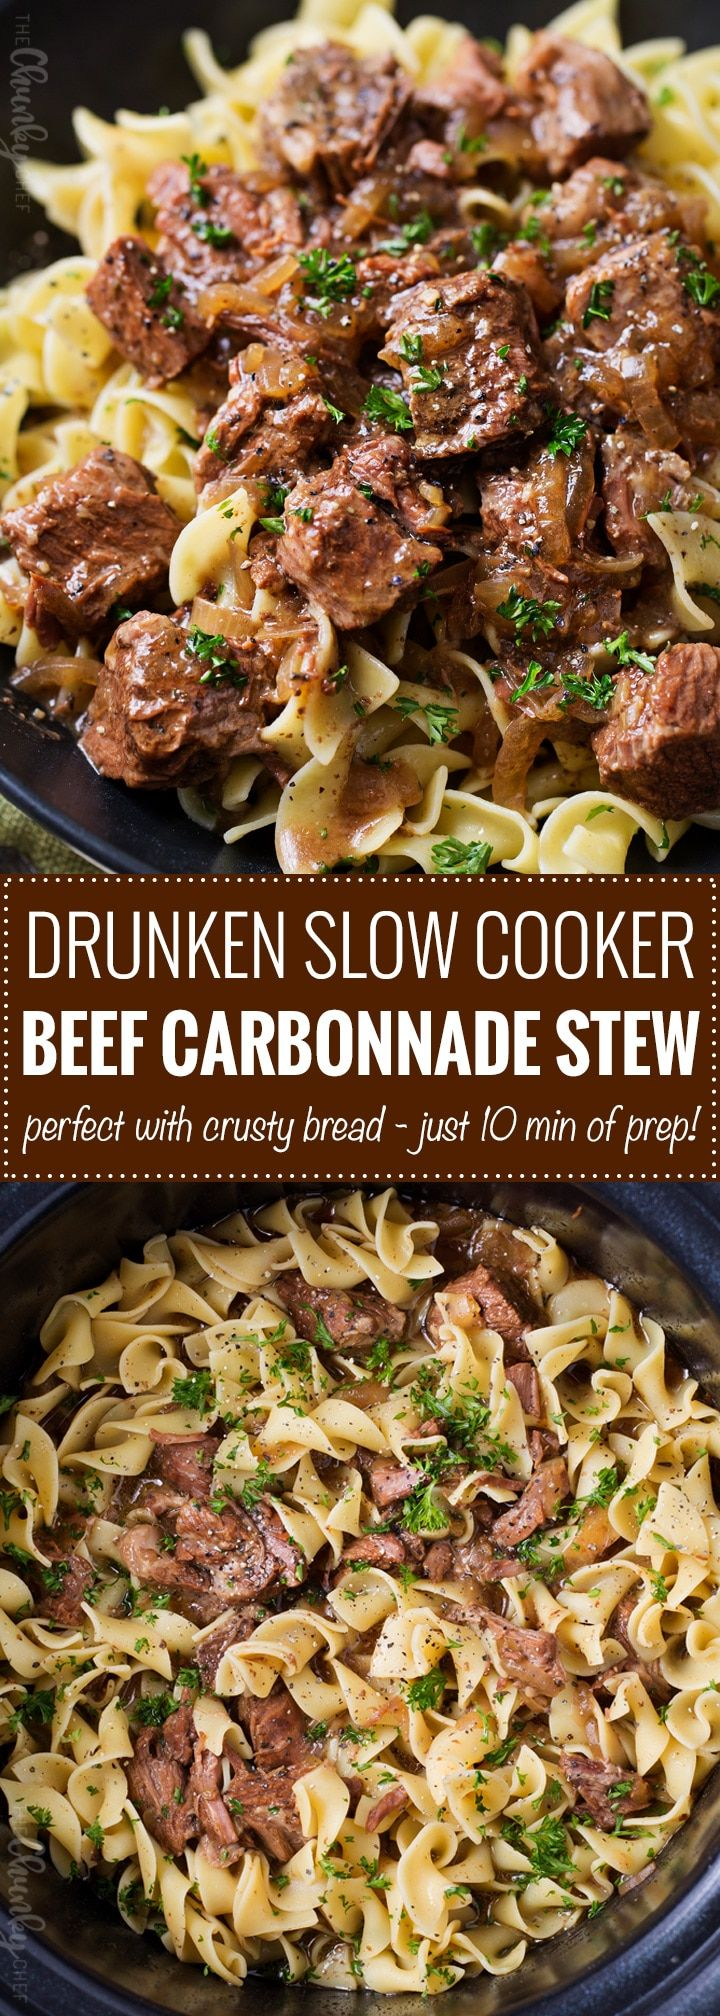 Drunken Slow Cooker Beef Stew (Beef Carbonnade)   Belgium comfort food, made easy in the slow cooker! Beef stew made with plenty of sweet onions, herbs and beer... perfect over egg noodles, mashed potatoes, or with a crusty piece of bread!   The Chunky Chef   #beefcarbonnade #beefstew #comfortfoodrecipe #slowcookerrecipes #crockpotrecipes #crockpotbeefrecipes